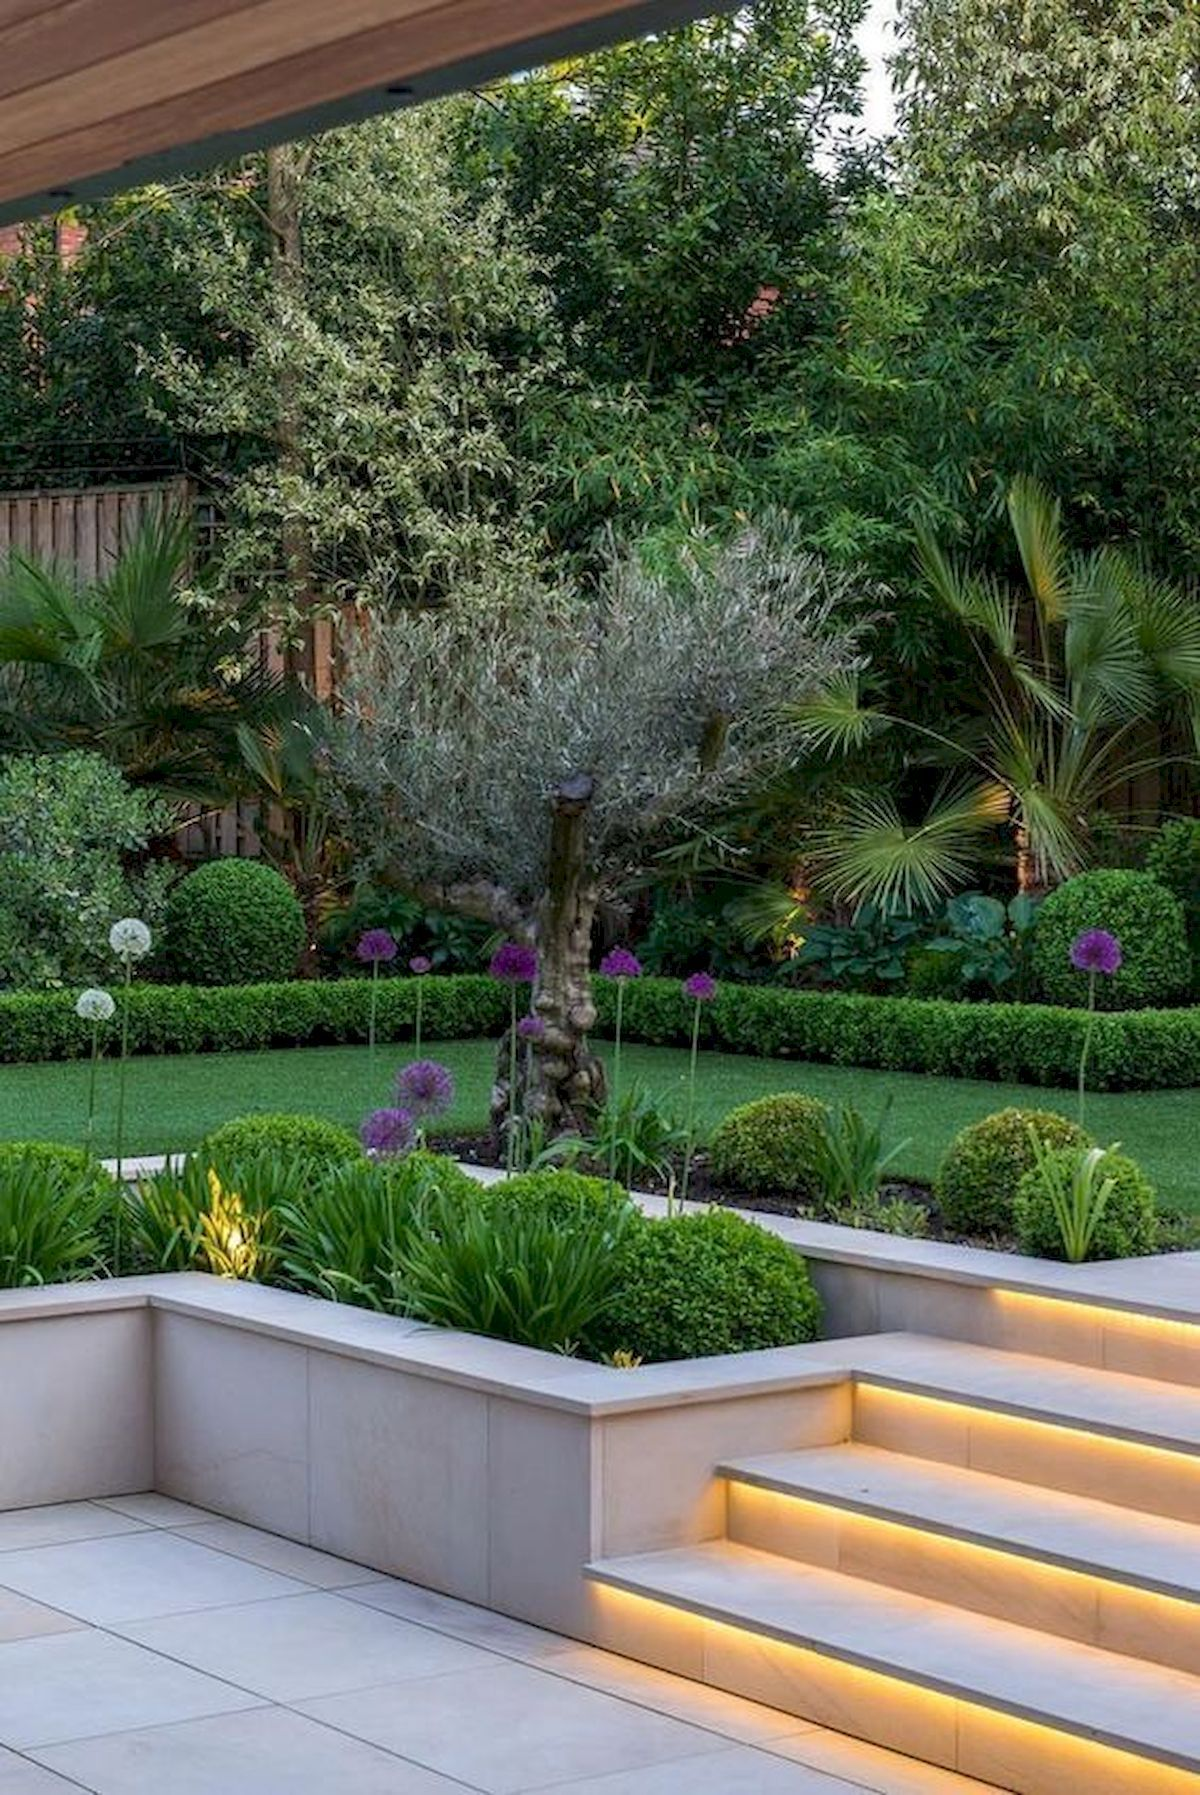 80 Awesome Backyards Garden Lighting Design Ideas Worldecor Co Backyard Landscaping Designs Country Garden Decor Modern Garden Design